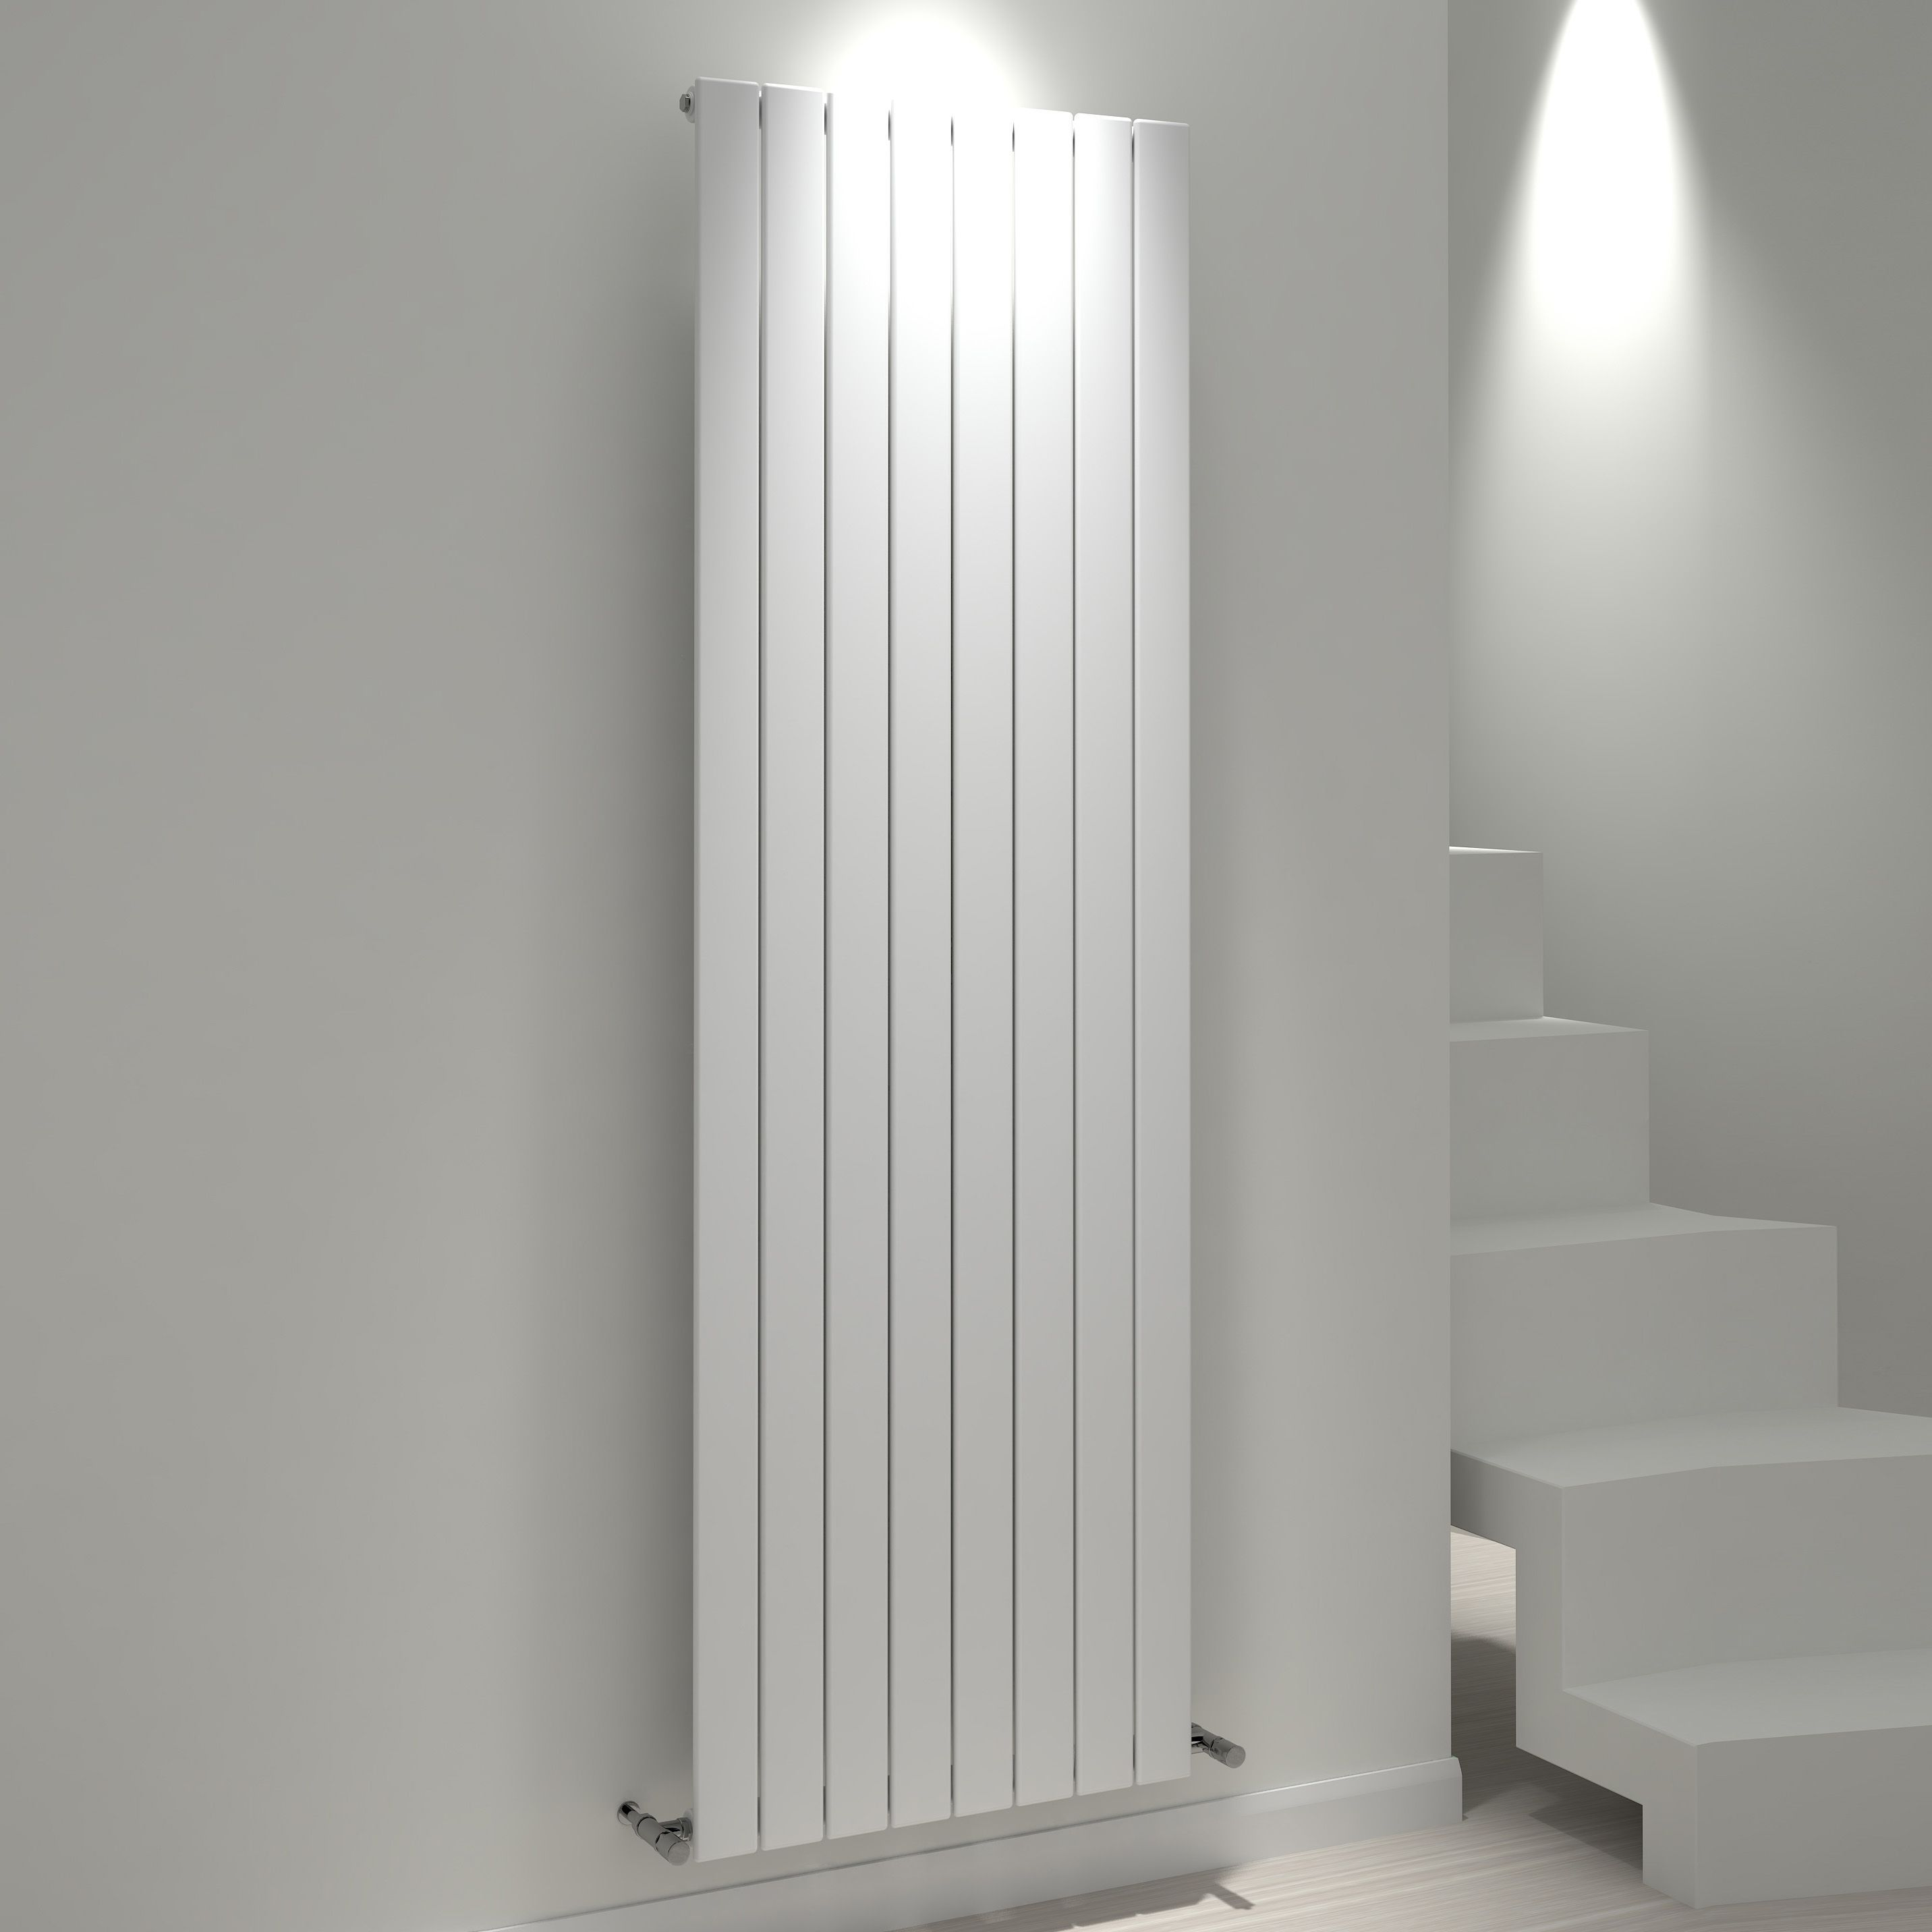 Kudox Tira Vertical Radiator White (h)1800 Mm (w)588 Mm